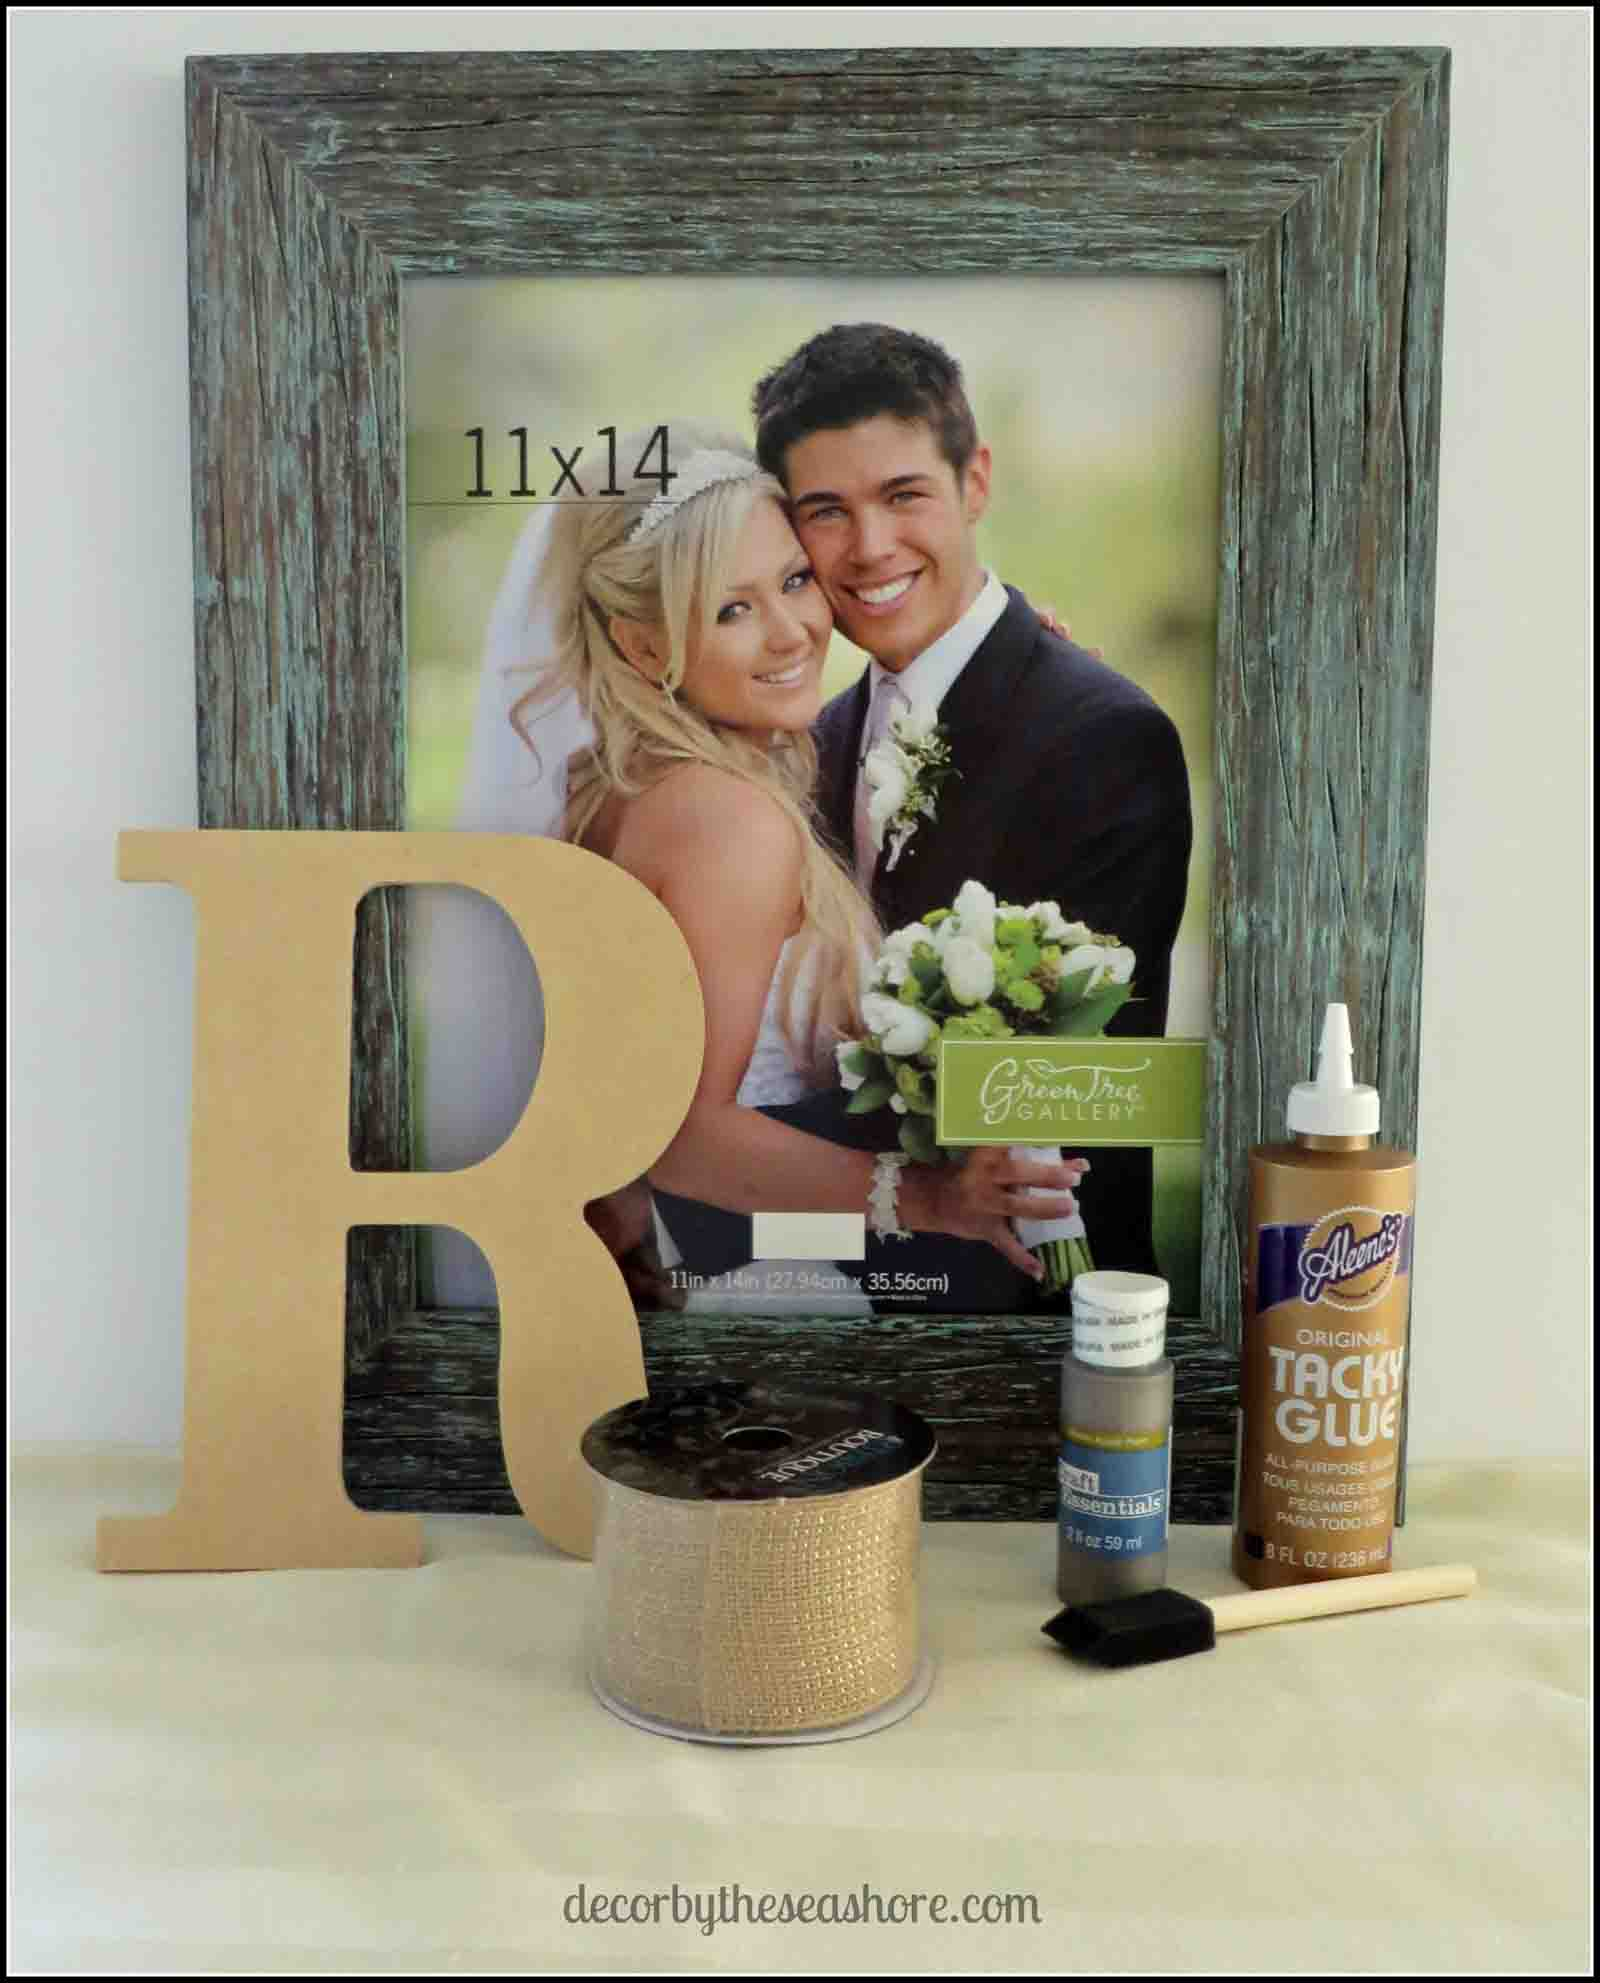 Framed Monogram Supplies- Decor by the Seashore